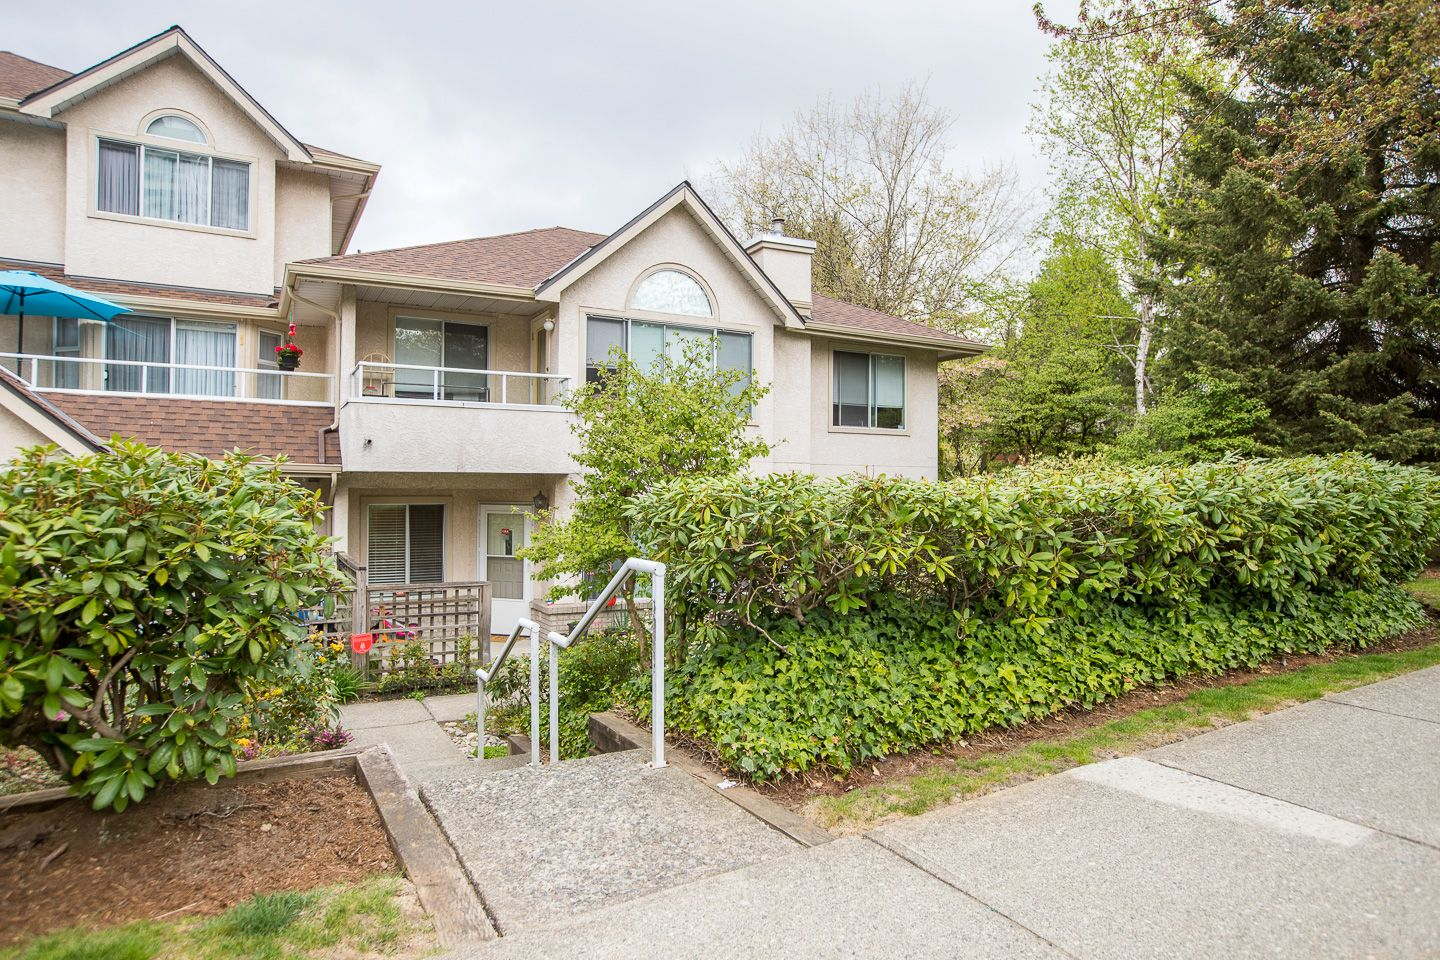 Photo 20: Photos: #8-3701 THURSTON ST in BURNABY: Central Park BS Condo for sale (Burnaby South)  : MLS®# R2572861